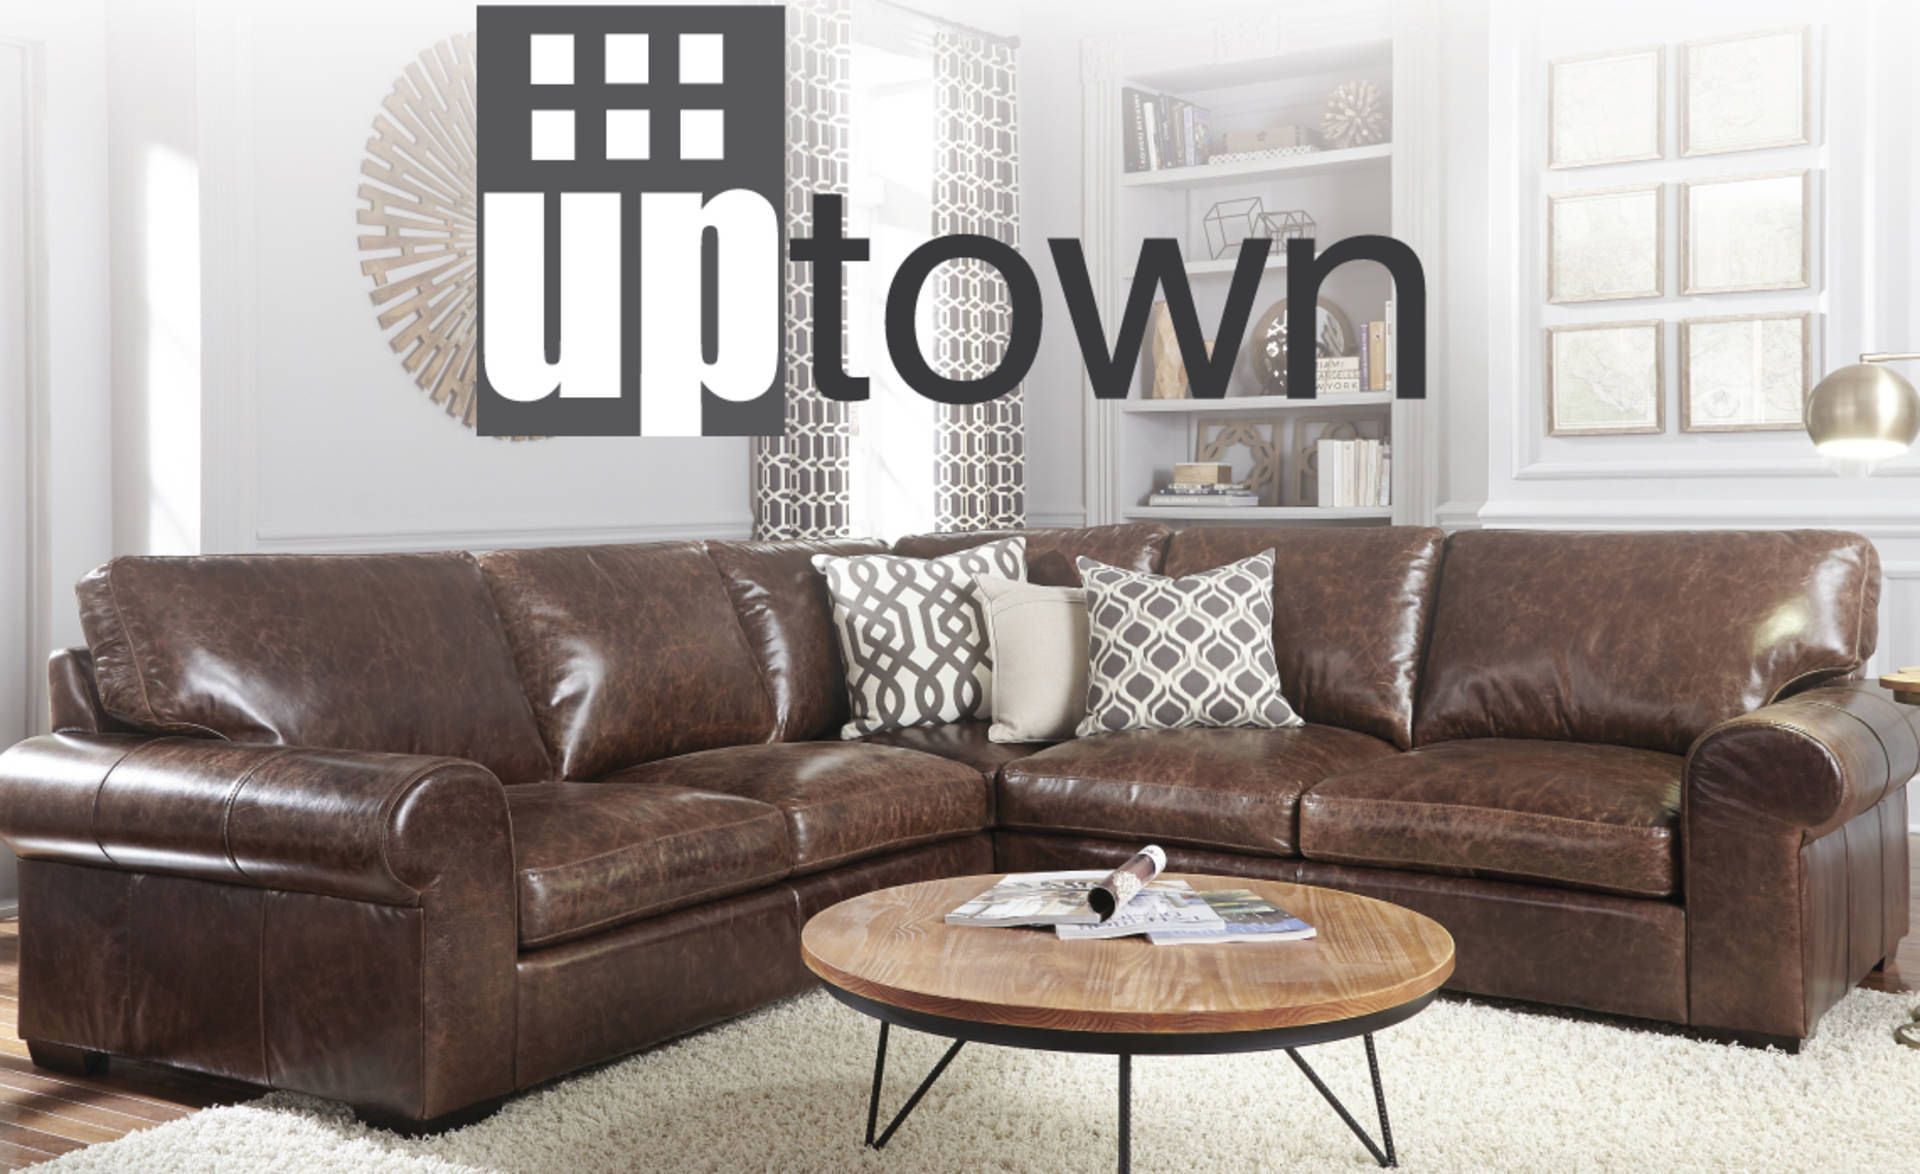 Furniture Pic hom furniture | furniture stores in minneapolis minnesota & midwest